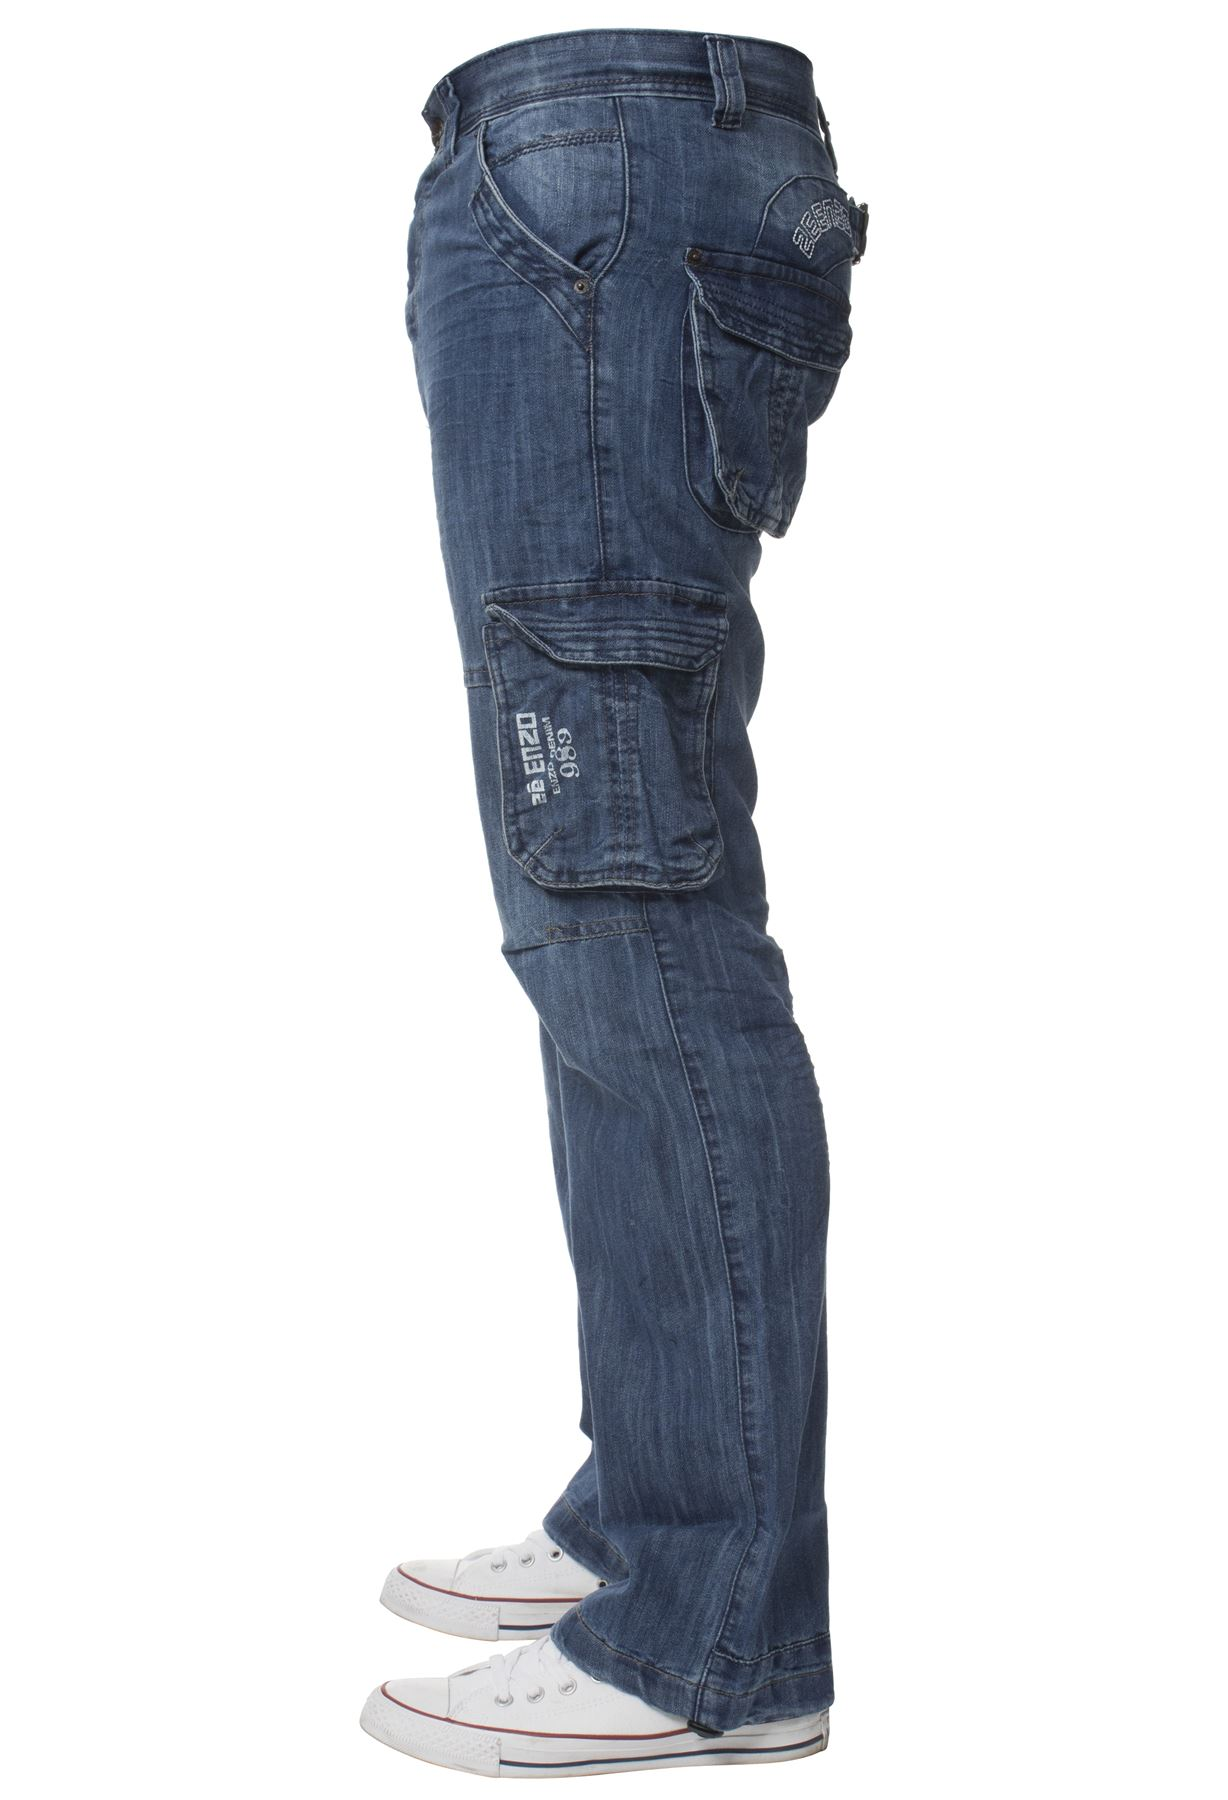 Enzo-Mens-Cargo-Combat-Trousers-Jeans-Work-Casual-Denim-Pants-Big-Tall-All-Waist thumbnail 10